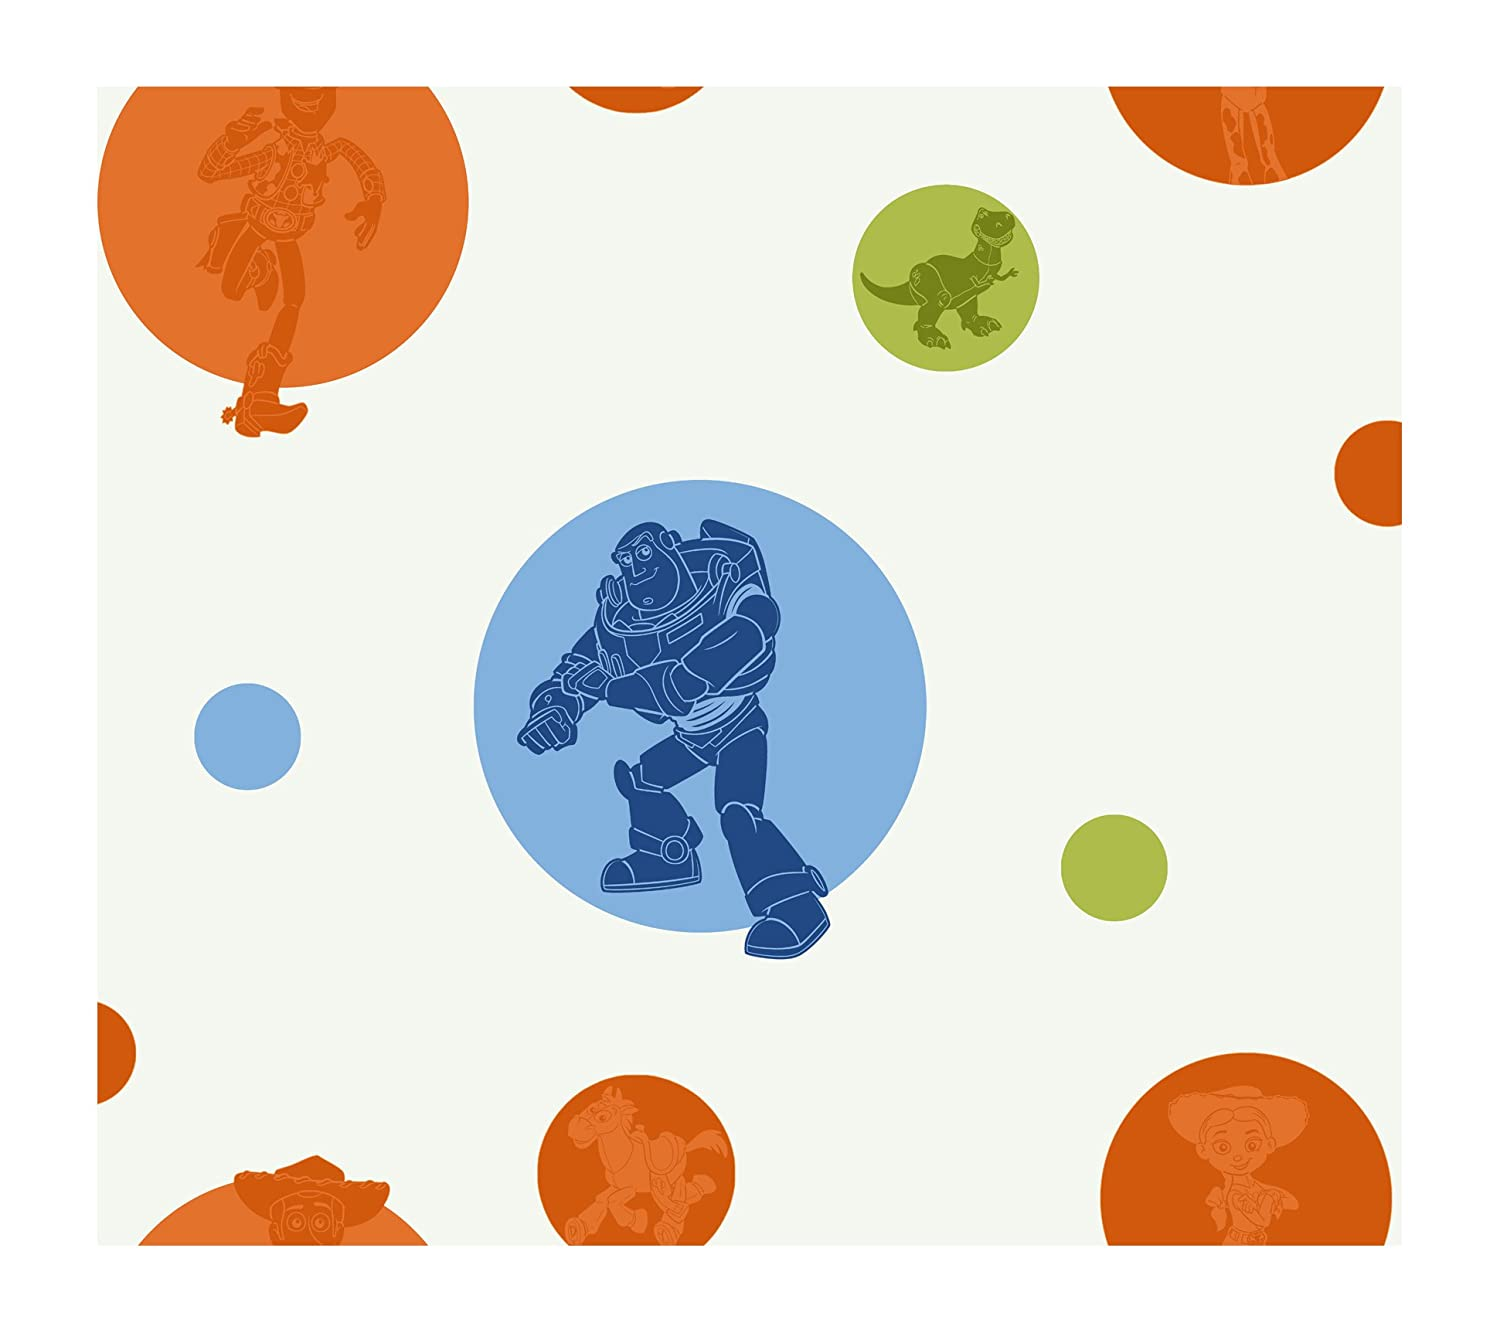 8-Inch x 10-Inch York Wallcoverings DK5827SMP Disney Kids Toy Story Circles /& Silhouettes Wallpaper Memo Sample